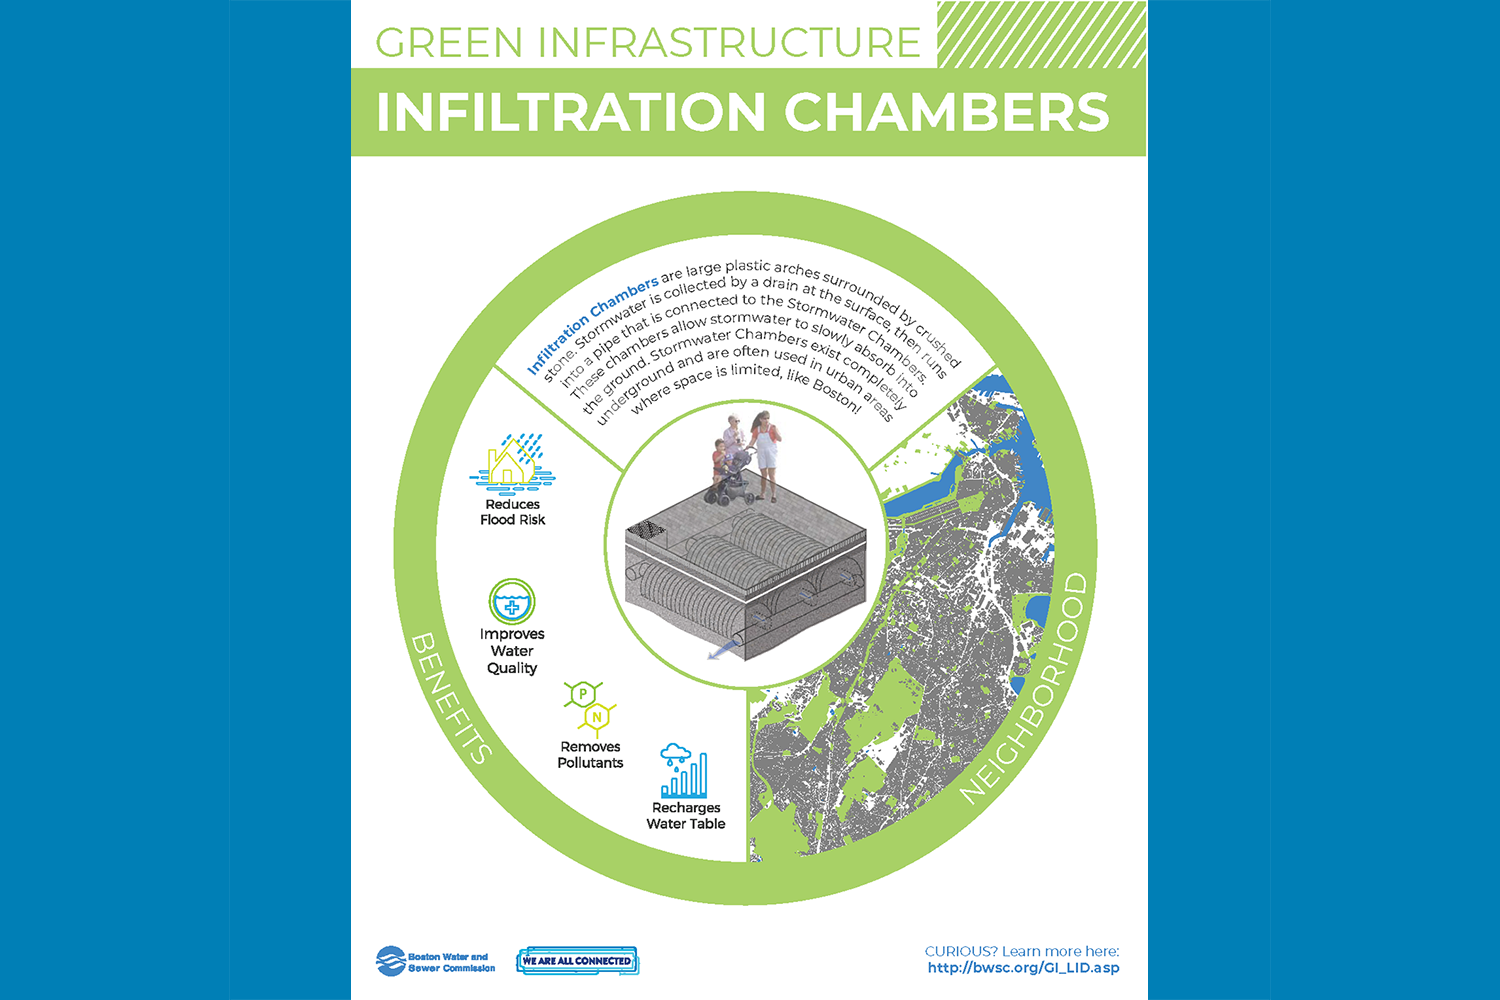 Green Infrastructure Signage: Infiltration Chambers